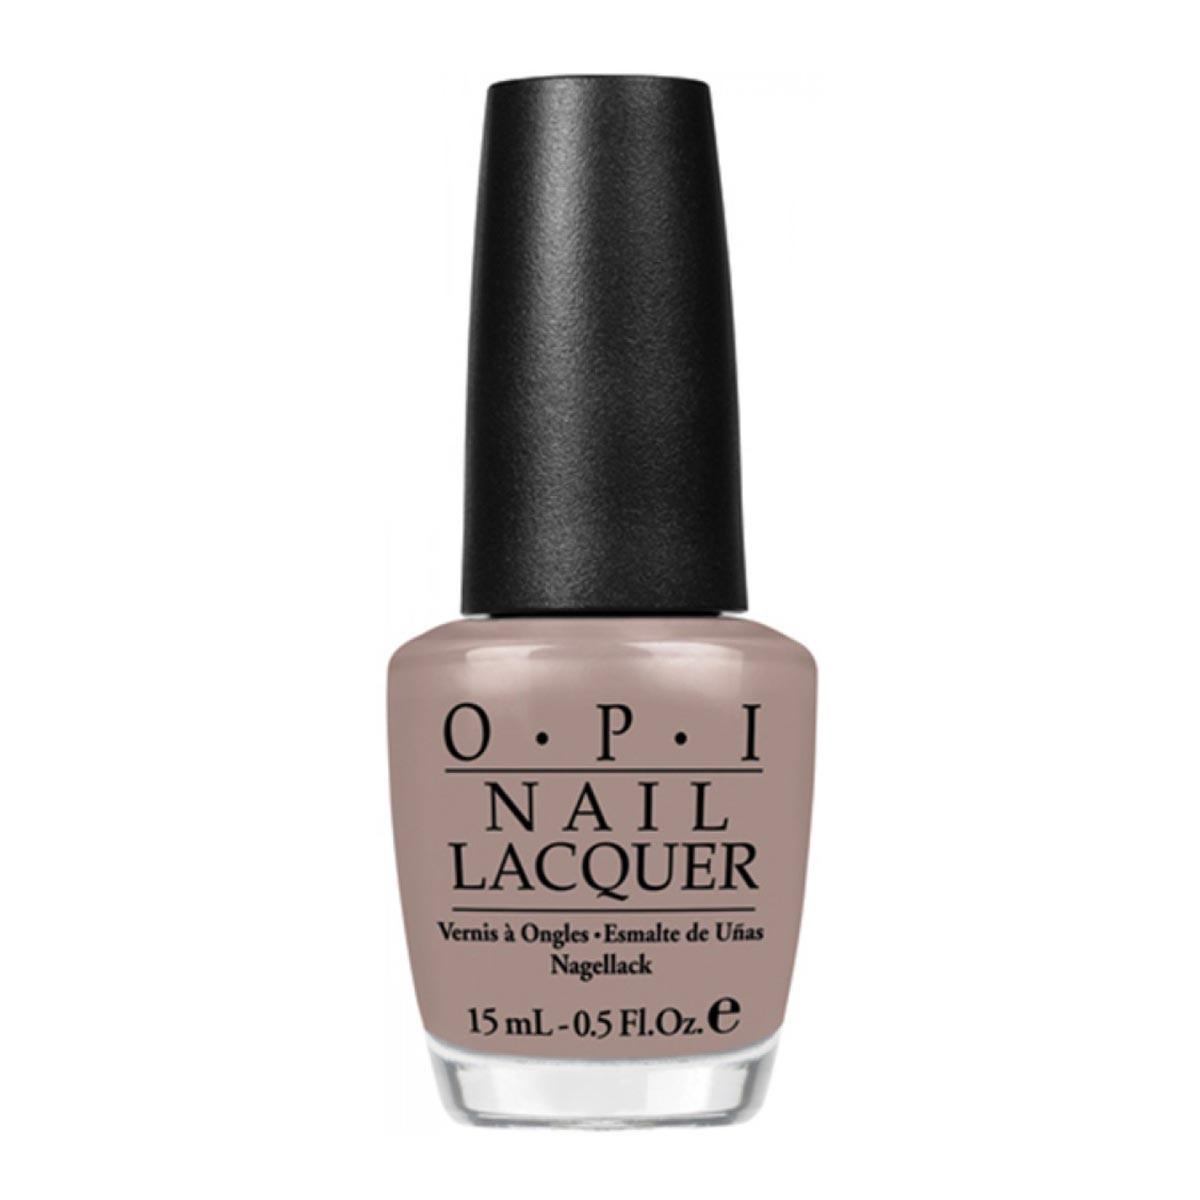 Opi Nail Lacquer Nlg13 Berlin There Done That